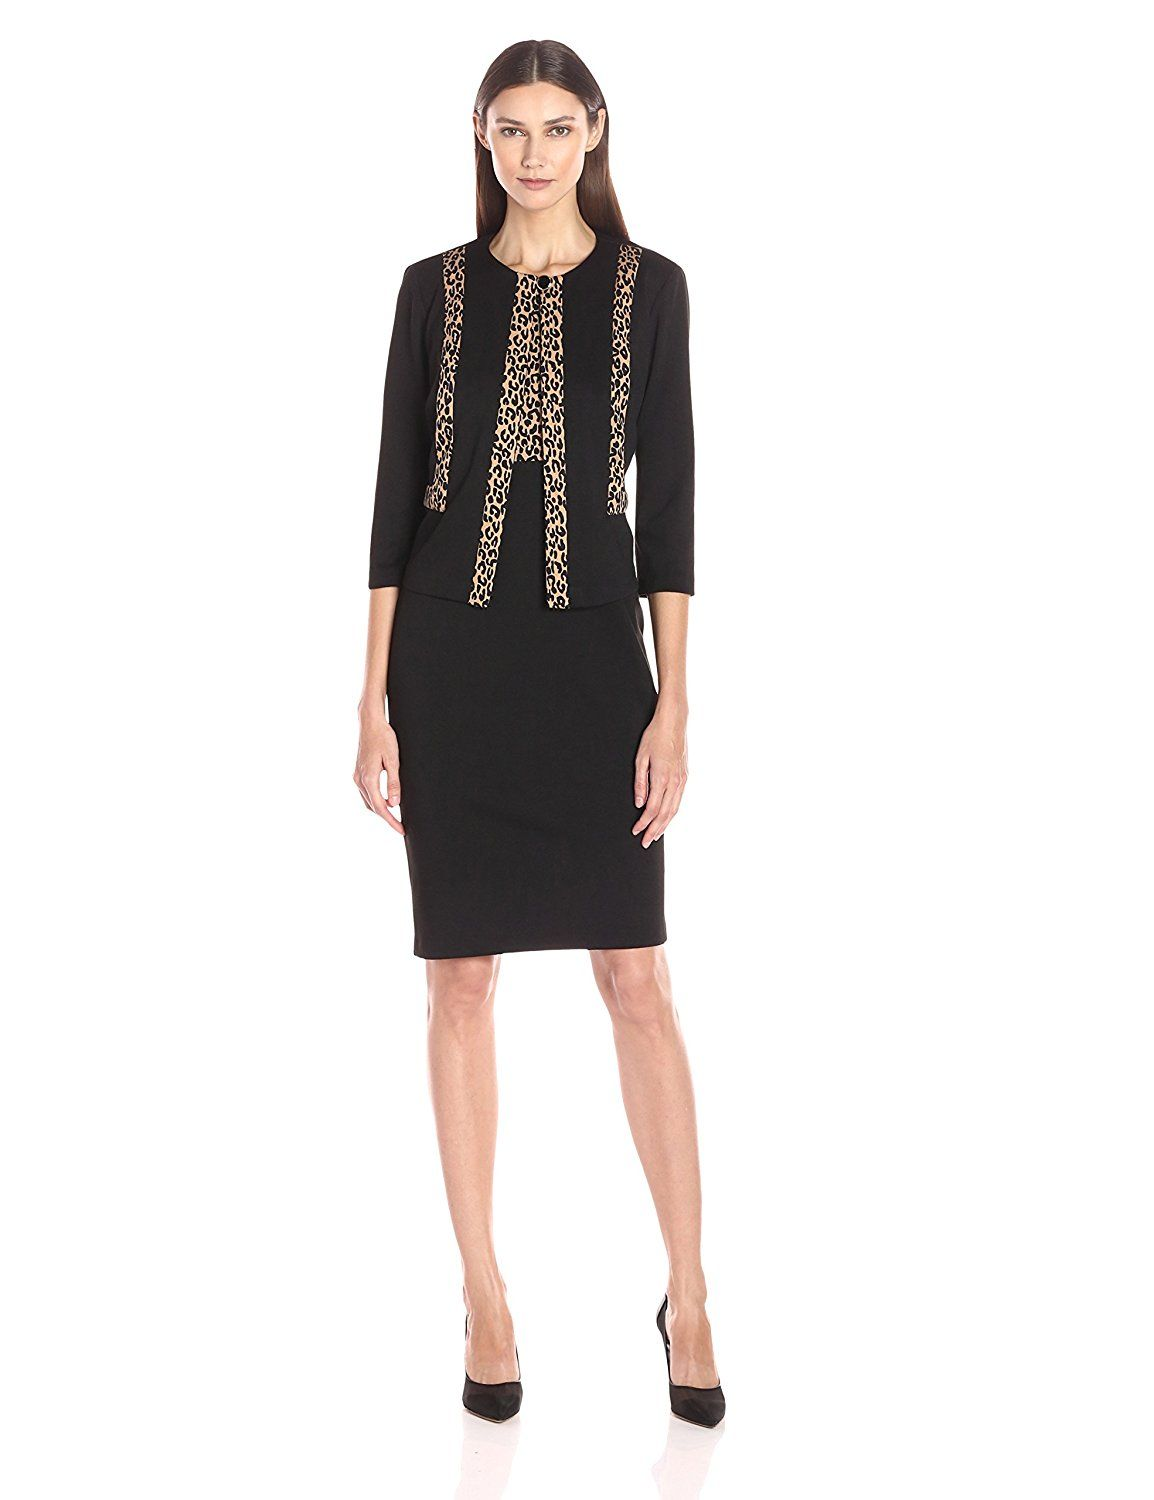 Danny and nicole womenus two piece jacket dress with leopard detail